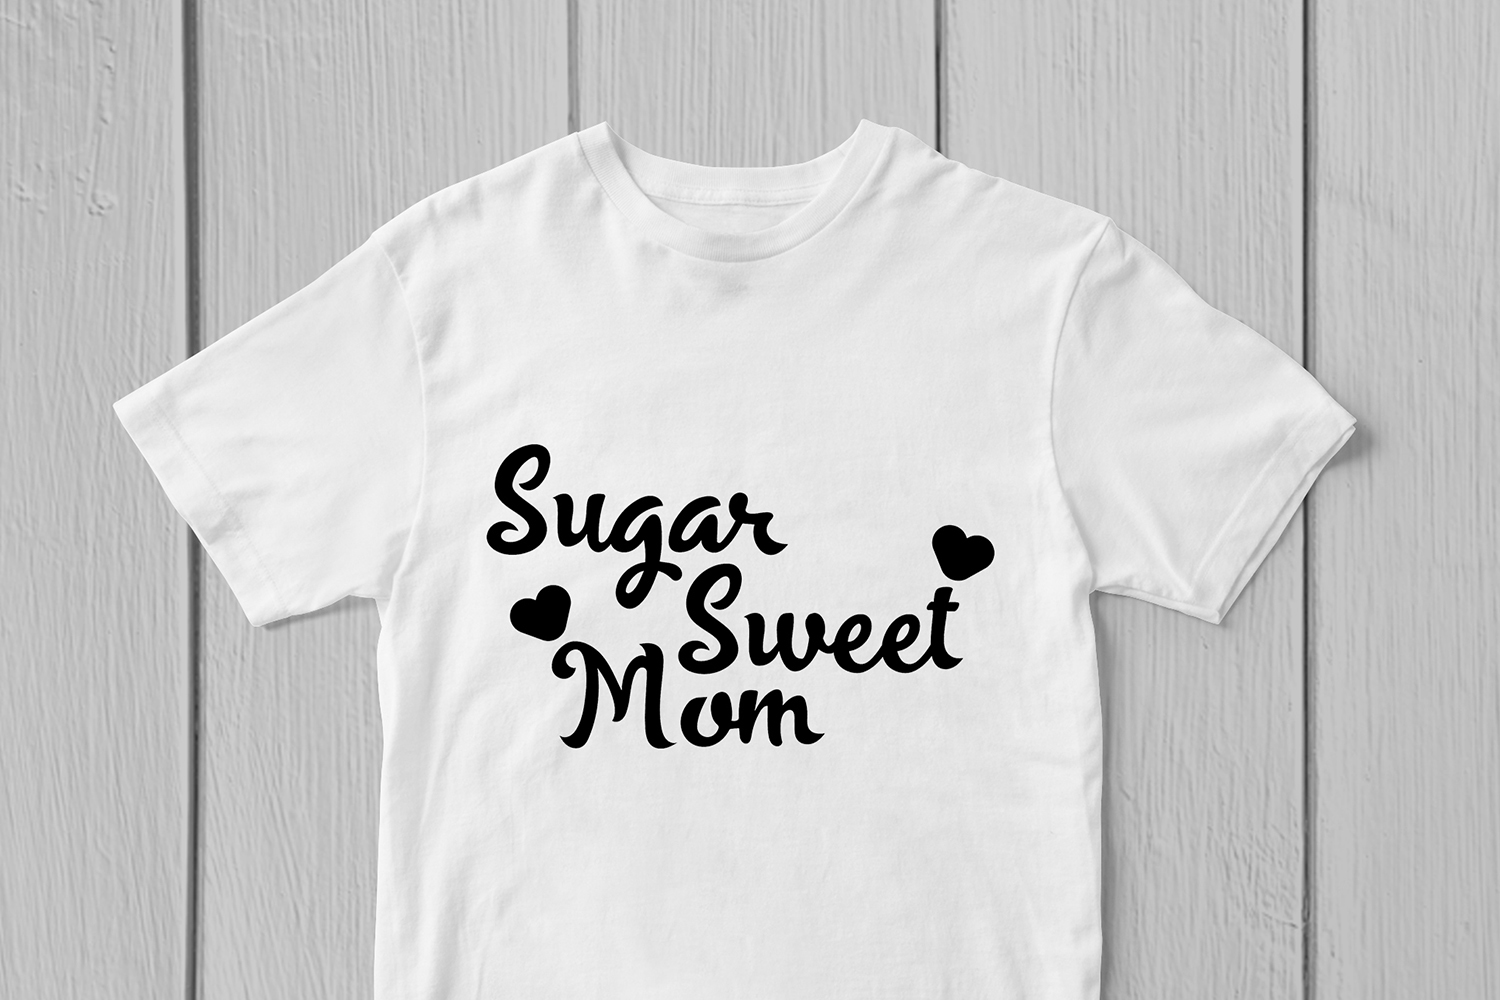 Sugar Sweet Mom - Mother SVG EPS DXF PNG Cutting Files example image 2